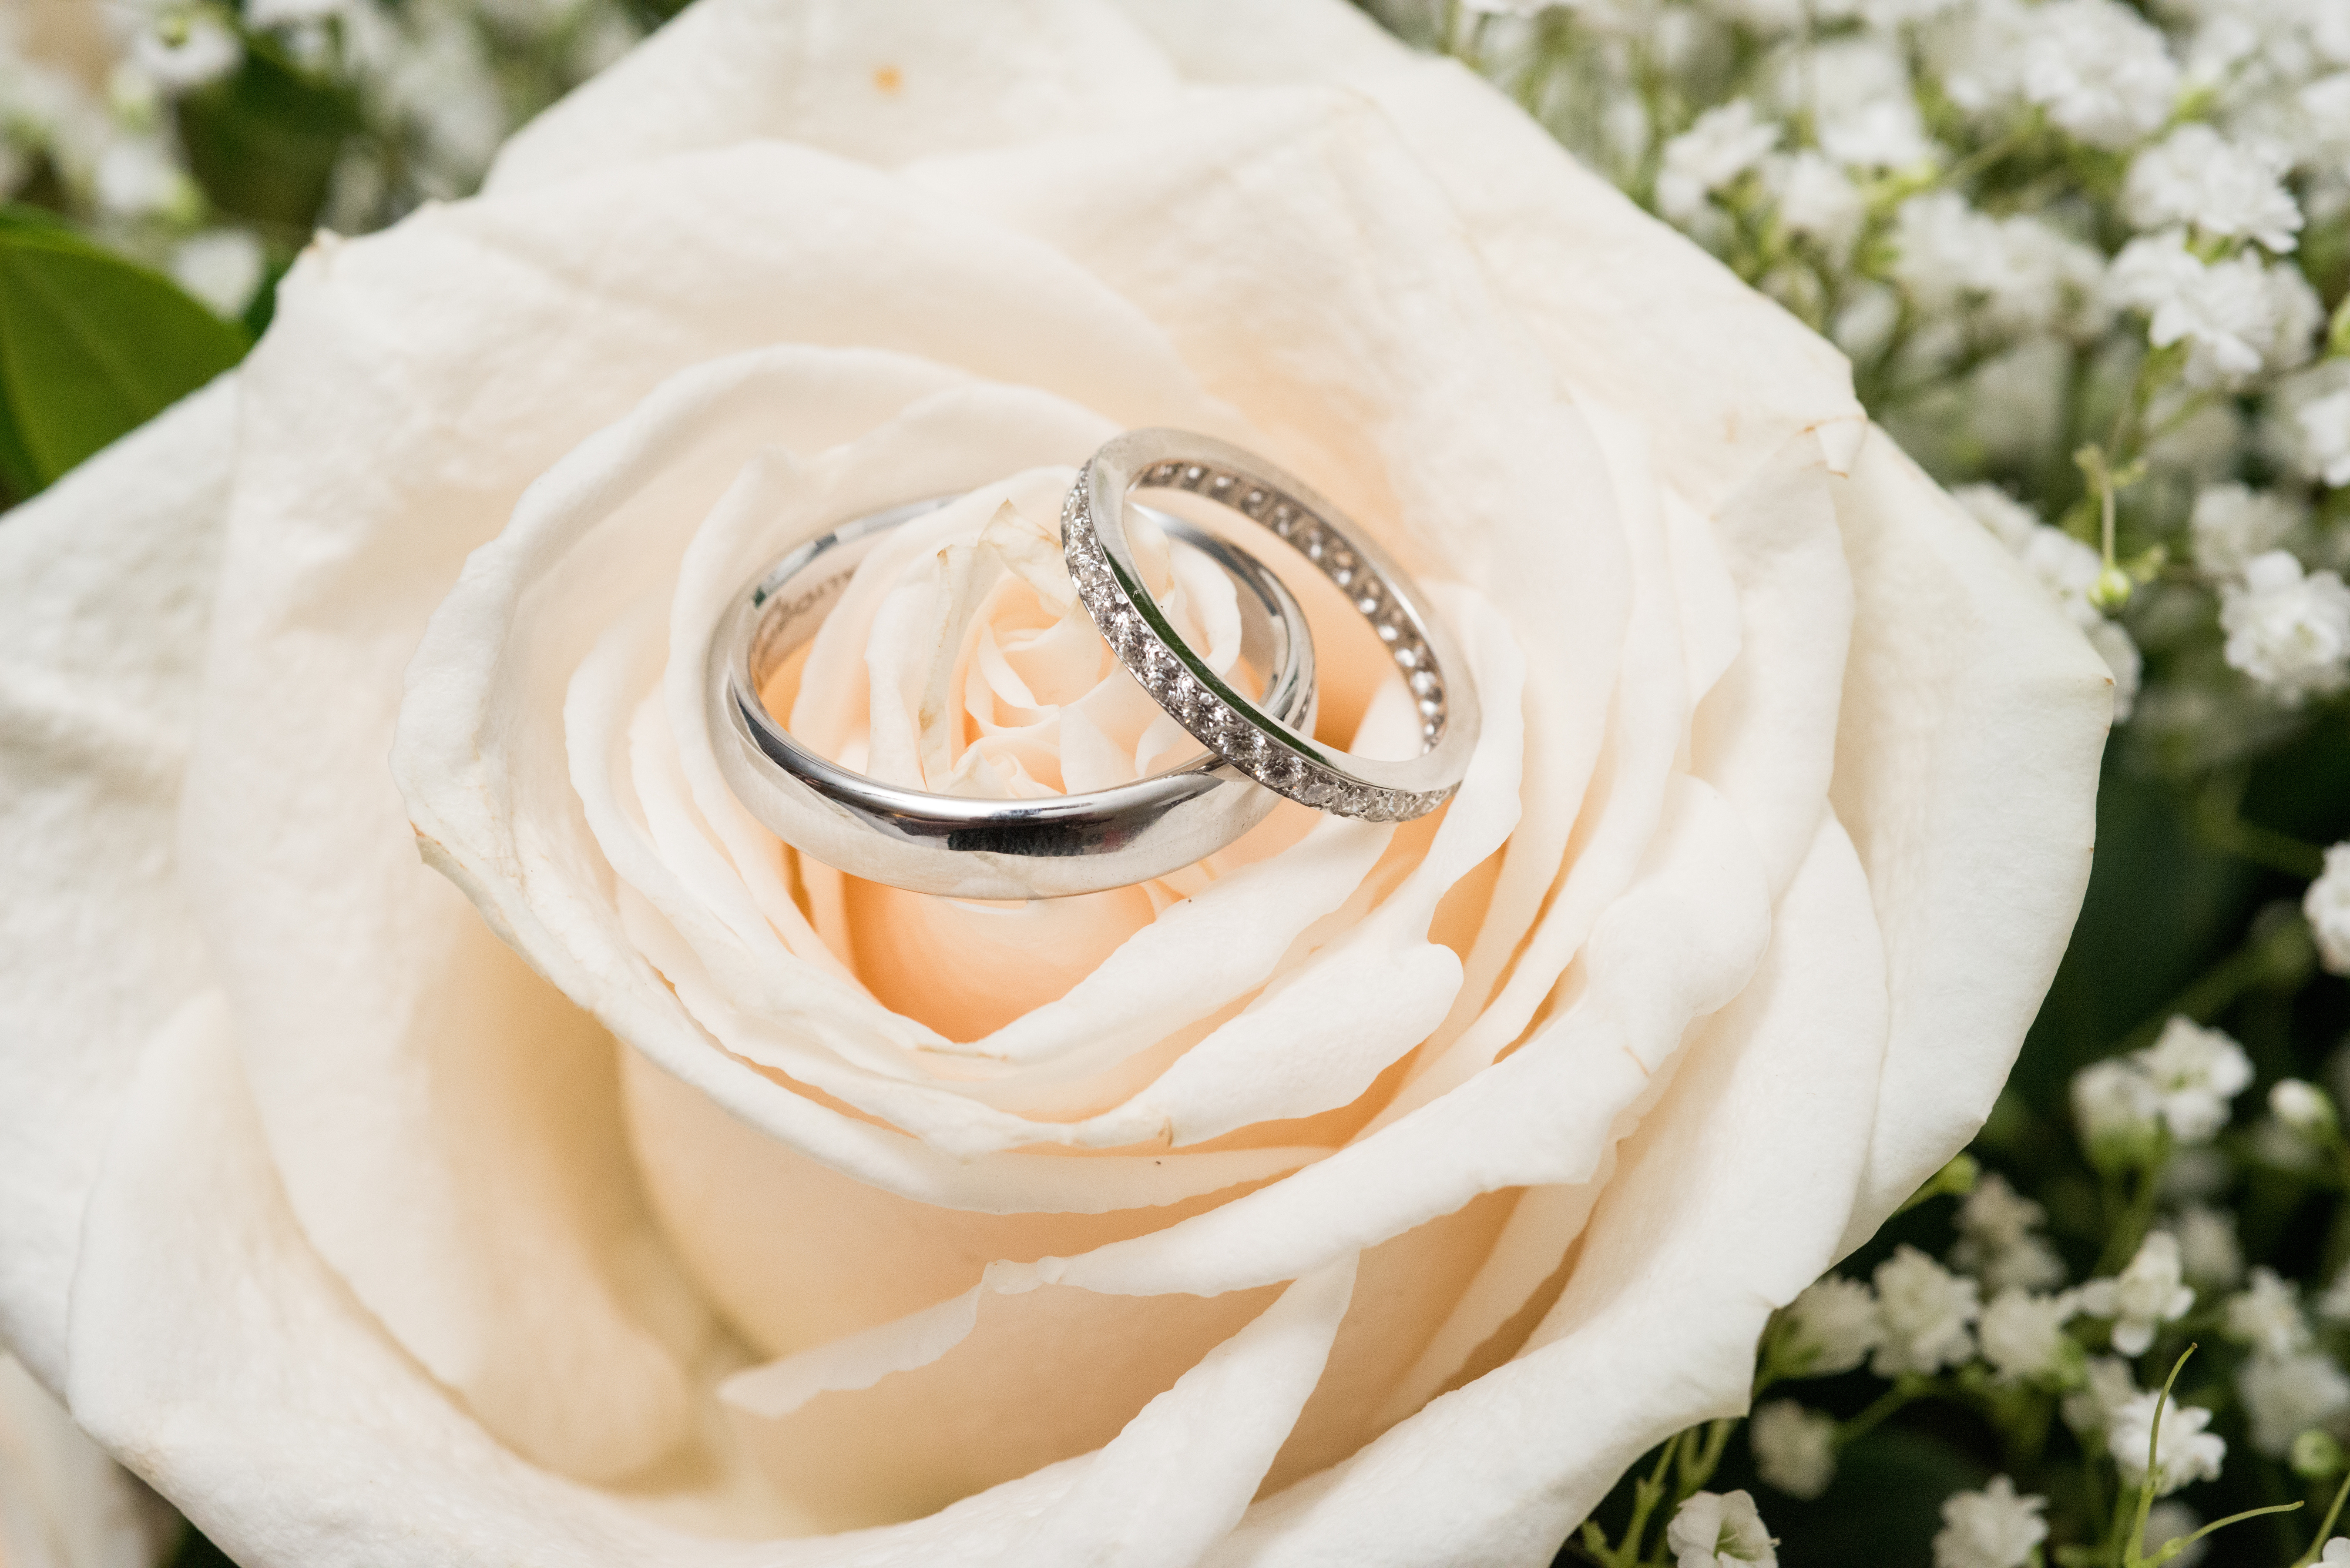 Rings on a Rose